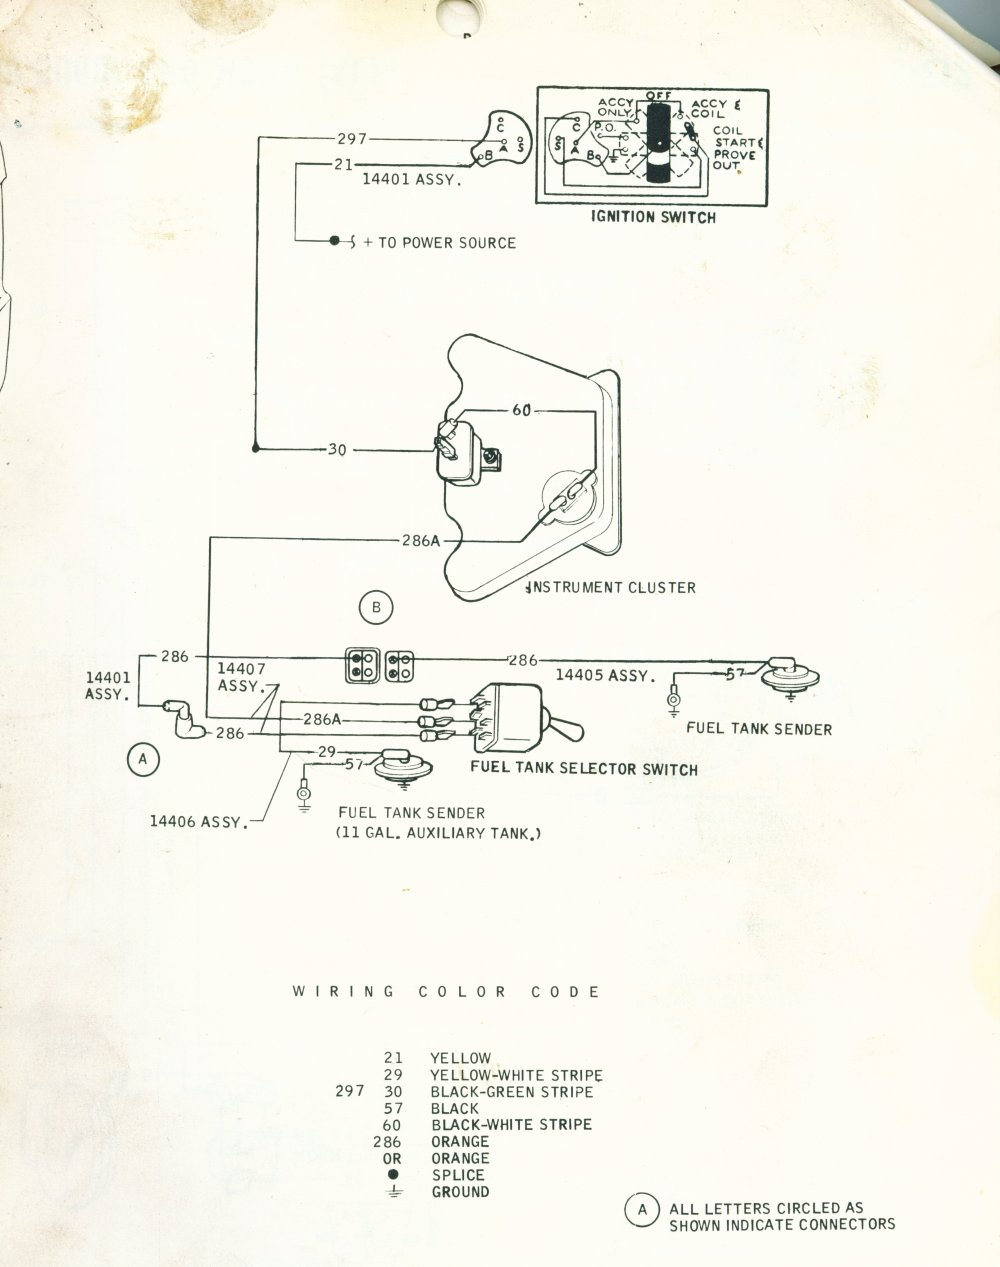 medium resolution of 1969 camaro fuel gauge wiring diagram 7 22 kenmo lp de u202273 blazer fuel gauge